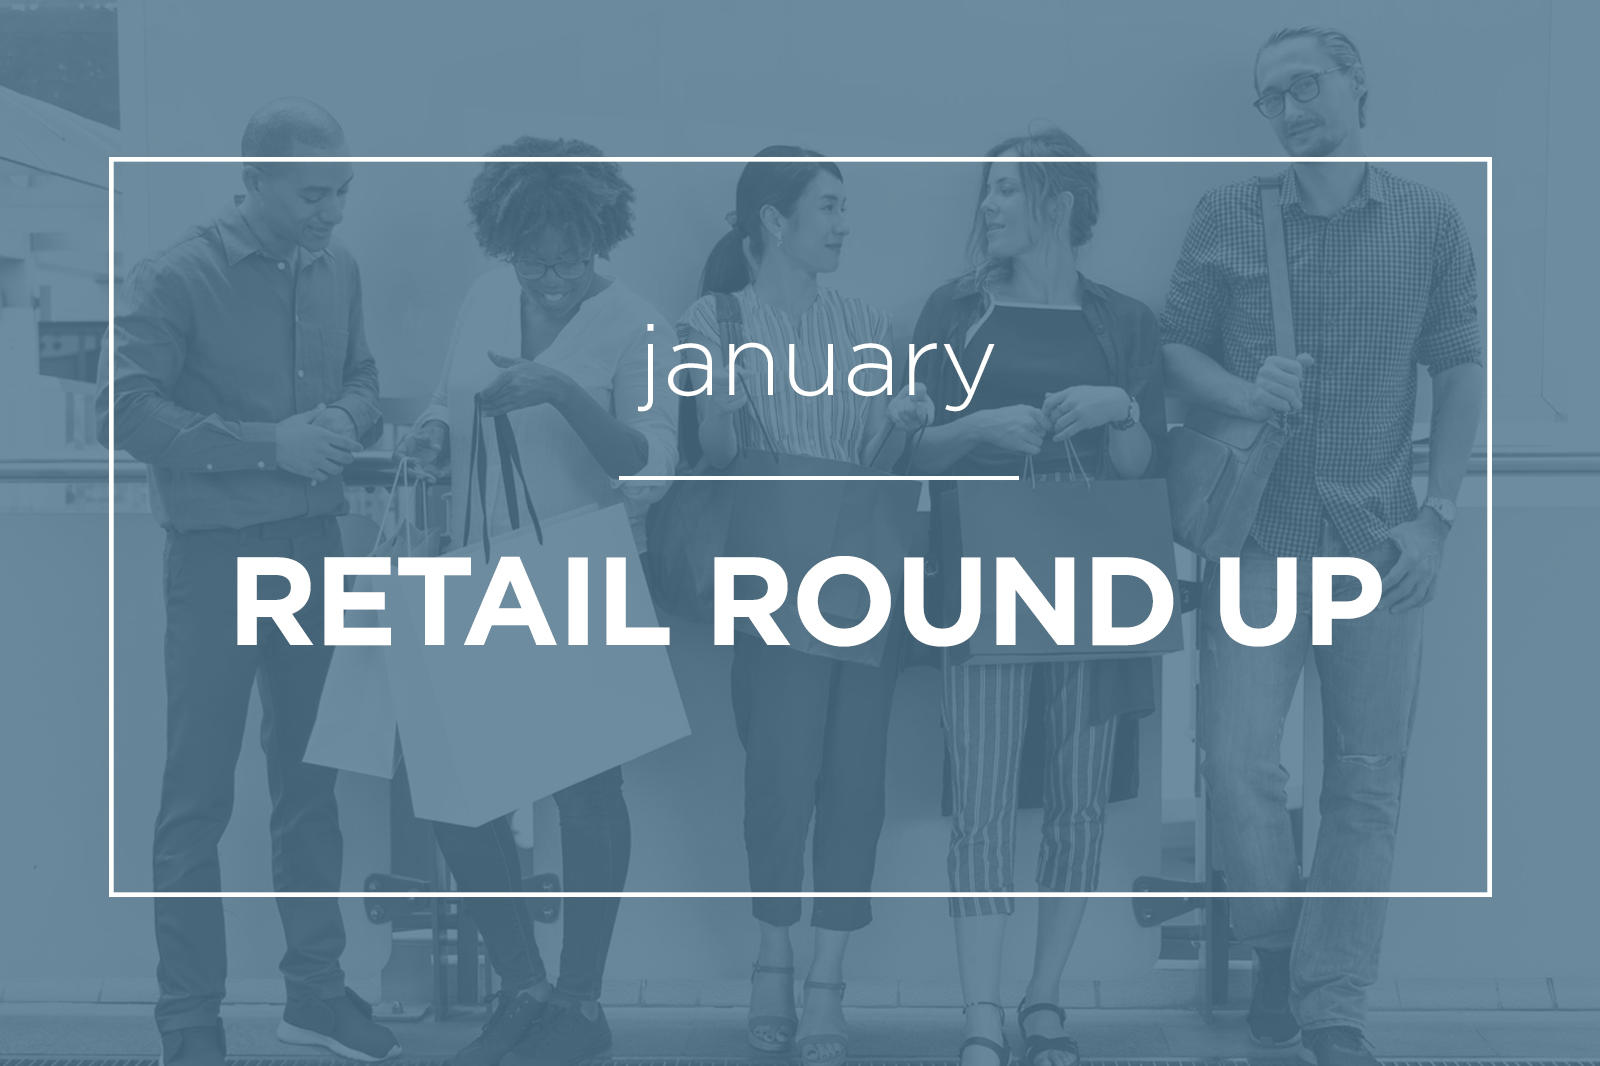 january-retail-round-up-feat-final